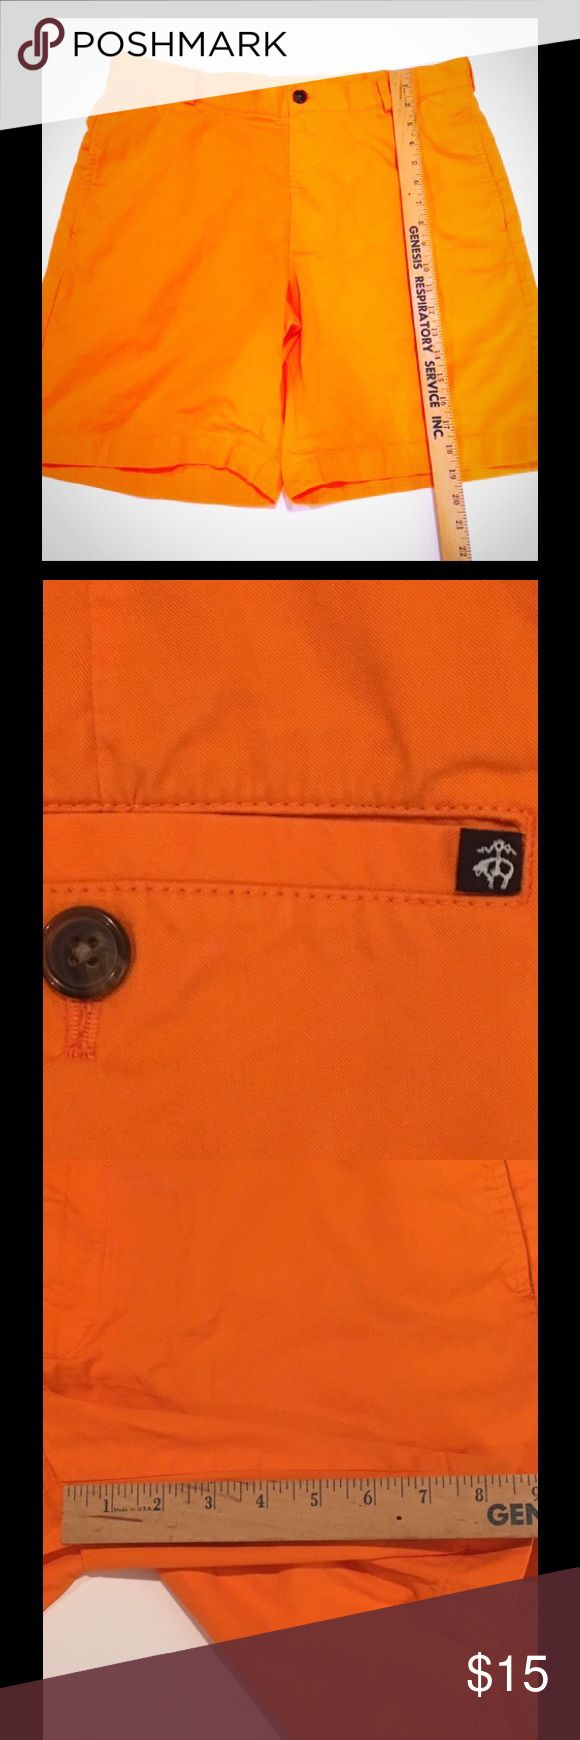 Men's Brooks Brothers Chino Shorts These are vibrant and beautiful men's chino shorts from Brooks Brothers. In flawless condition, they contain the iconic Golden Fleece logo on the back right pocket. A bit darker than how the app makes them look. Very stylish and a great brand. Waist size 36. Don't miss out! Accepting offers! Thank you. Brooks Brothers Shorts Flat Front